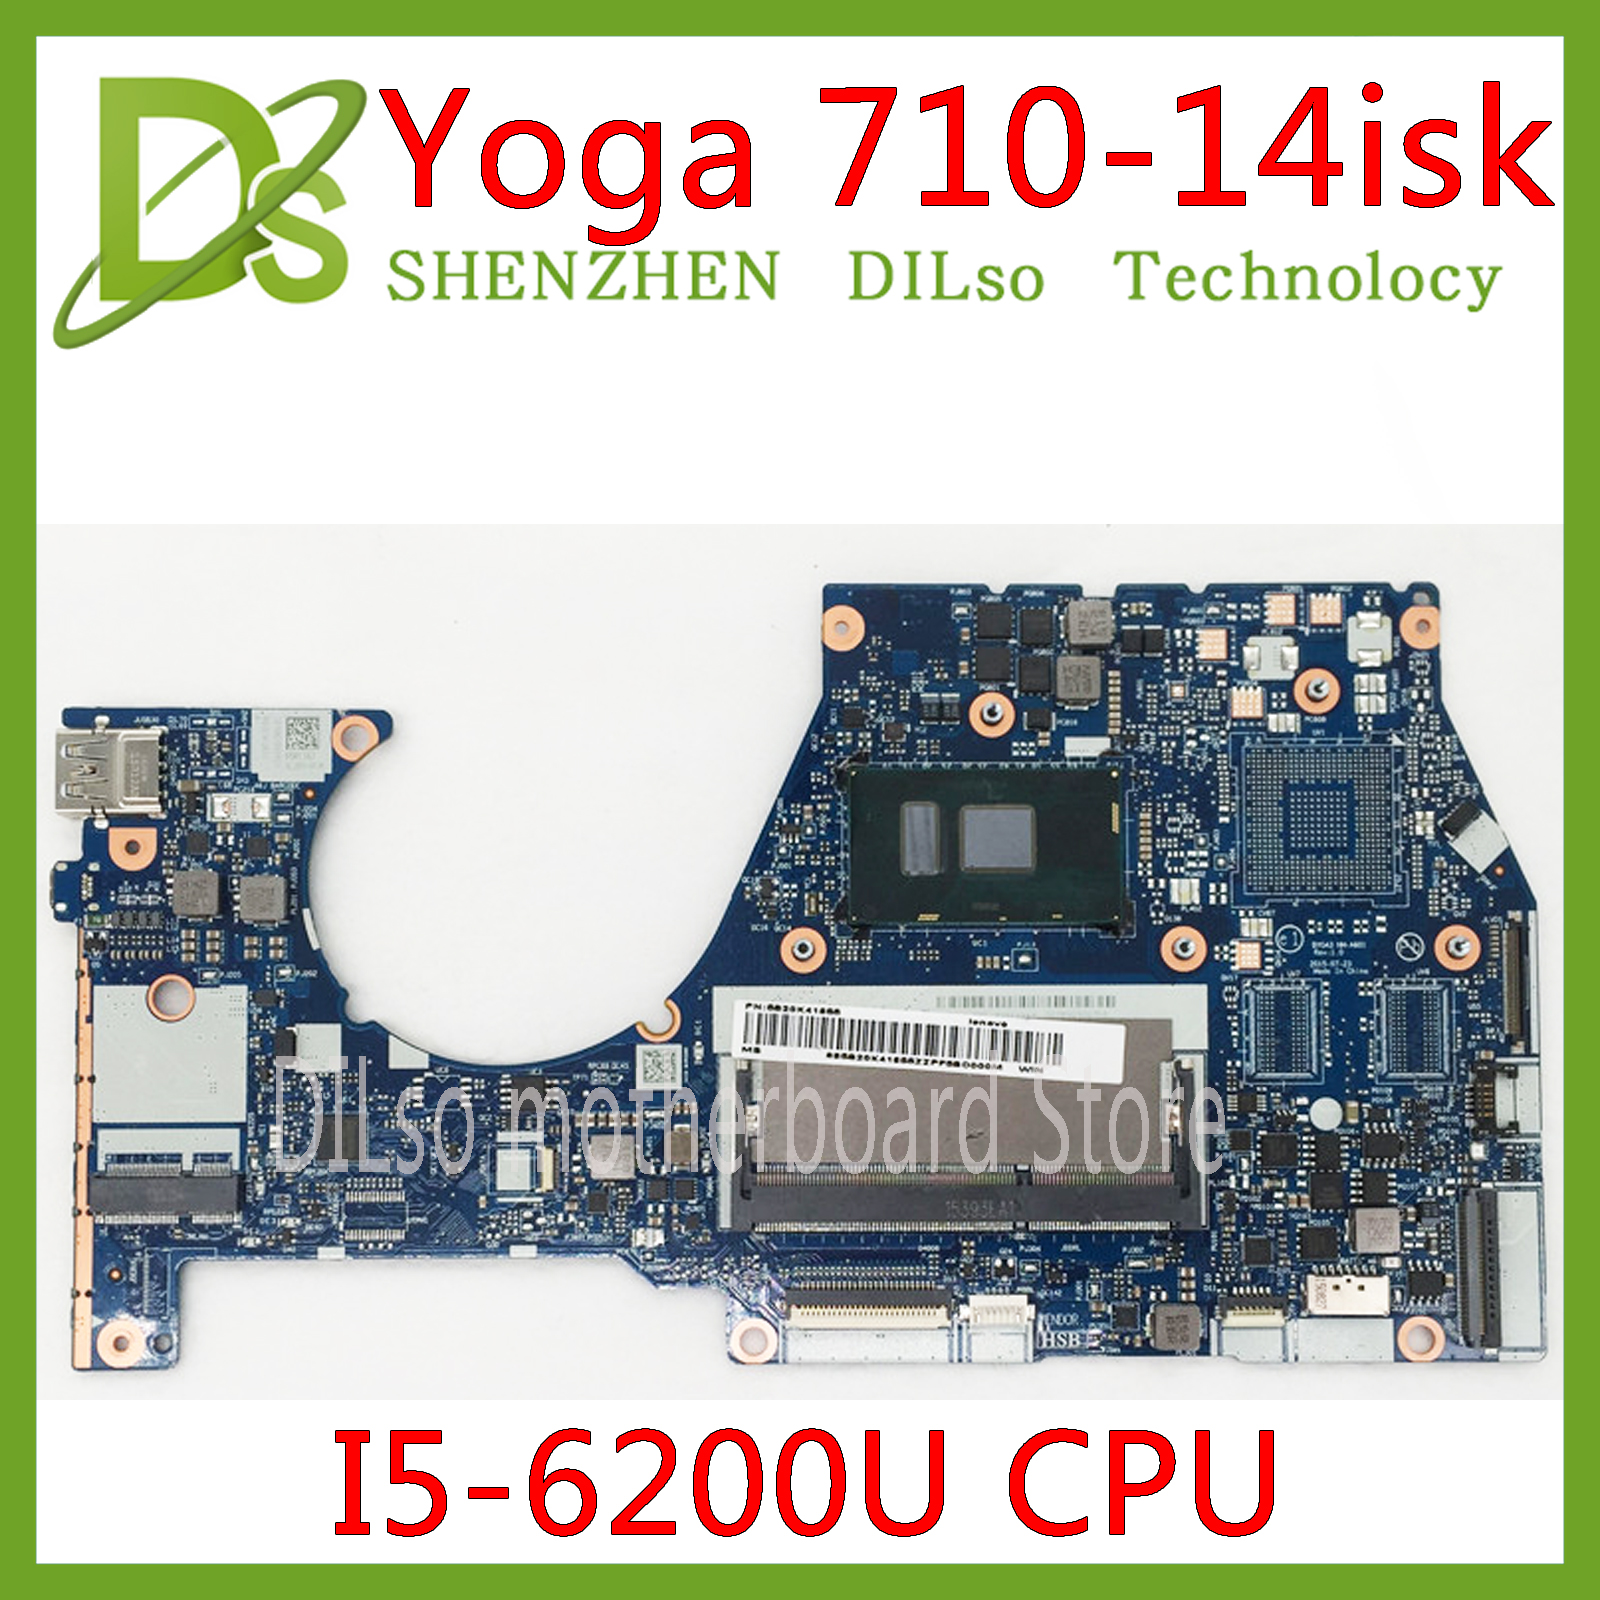 KEFU NM-A601 Lenovo Yoga 700-14ISK Laptop Motherboard With I5-6200U CPU FRU:5B20K41654 Original 100% Tested